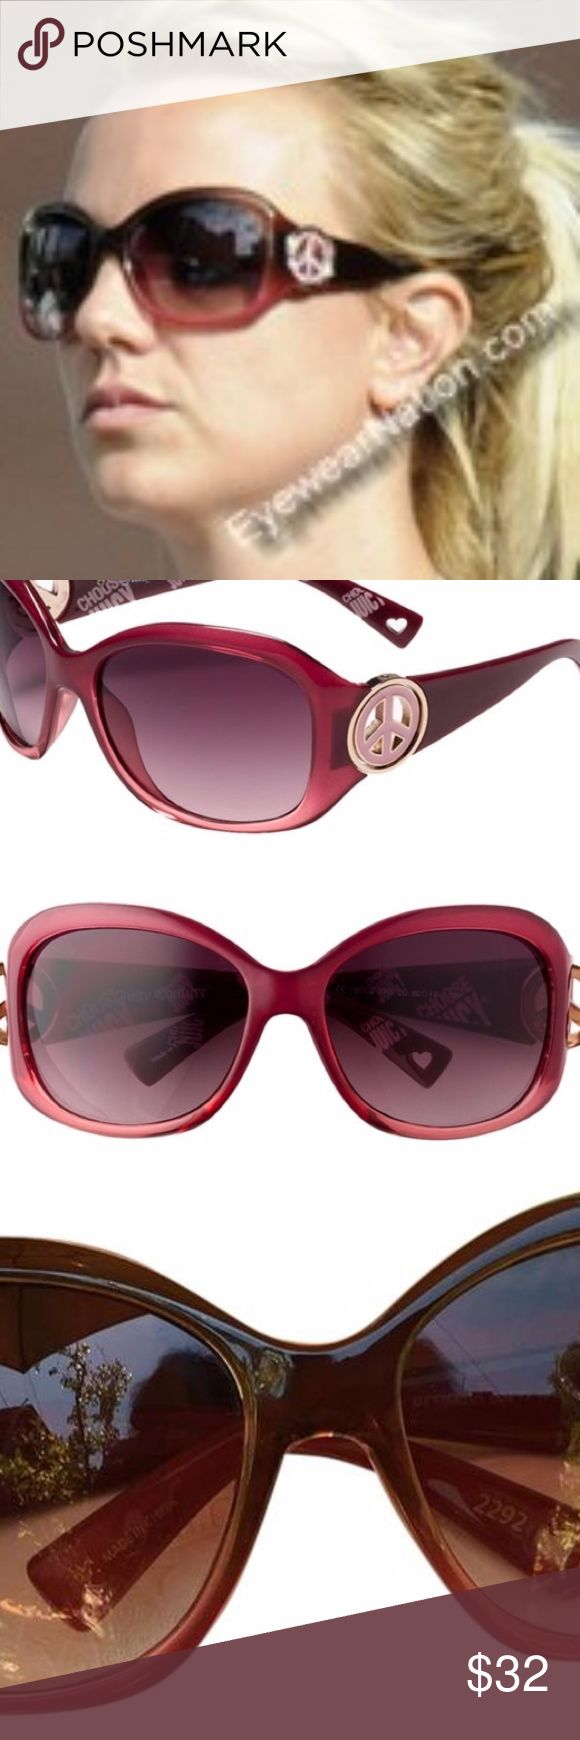 Juicy Couture BFF Sunglasses, With Case Juicy Couture BFF Sunglasses as seen worn on Brittany Spears, choose Juicy Couture in good condition comes with case. flash sale Juicy Couture Accessories Sunglasses